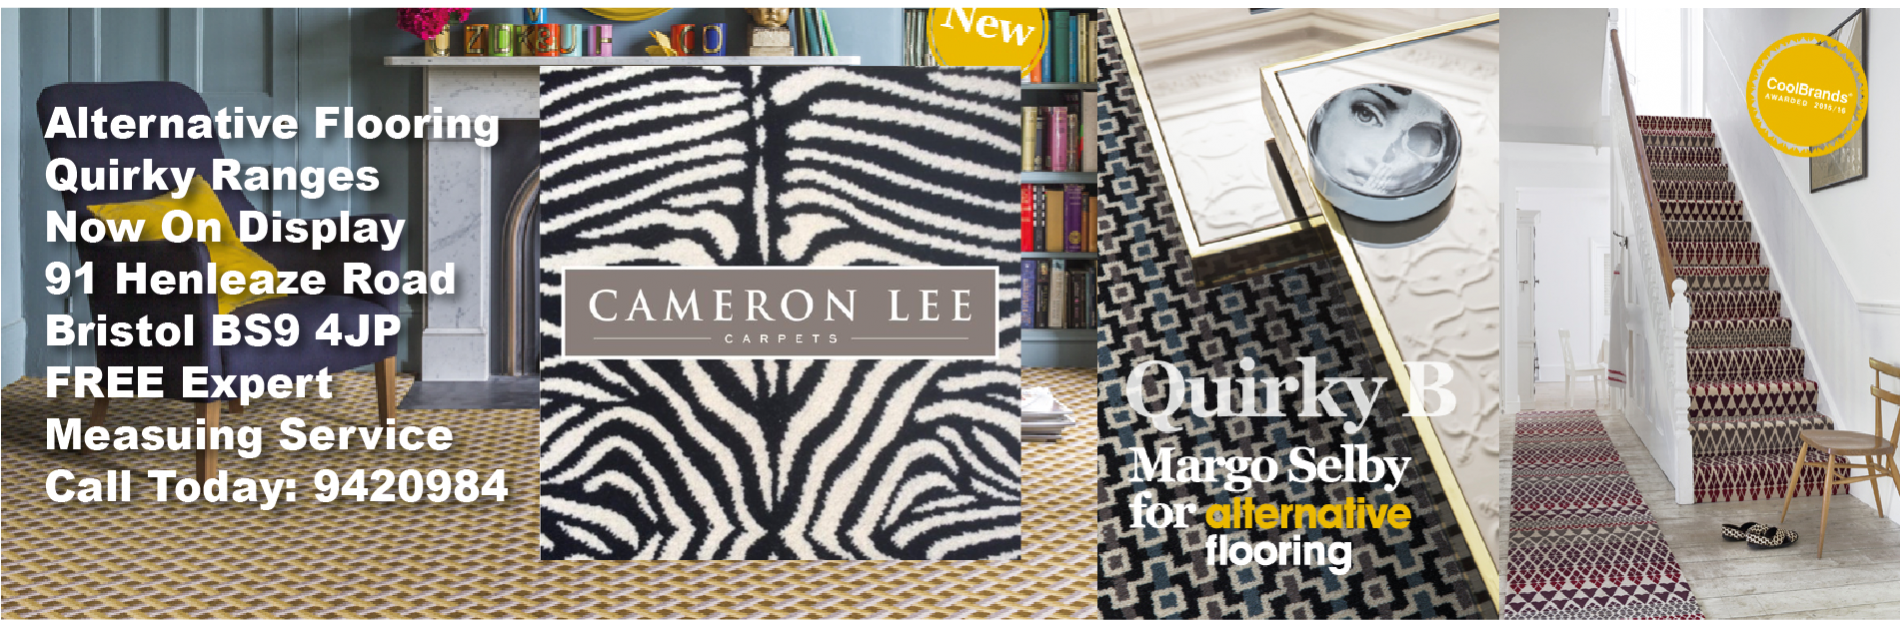 Cameron Lee Carpets Bristol Quirky Banner Alternative Flooring